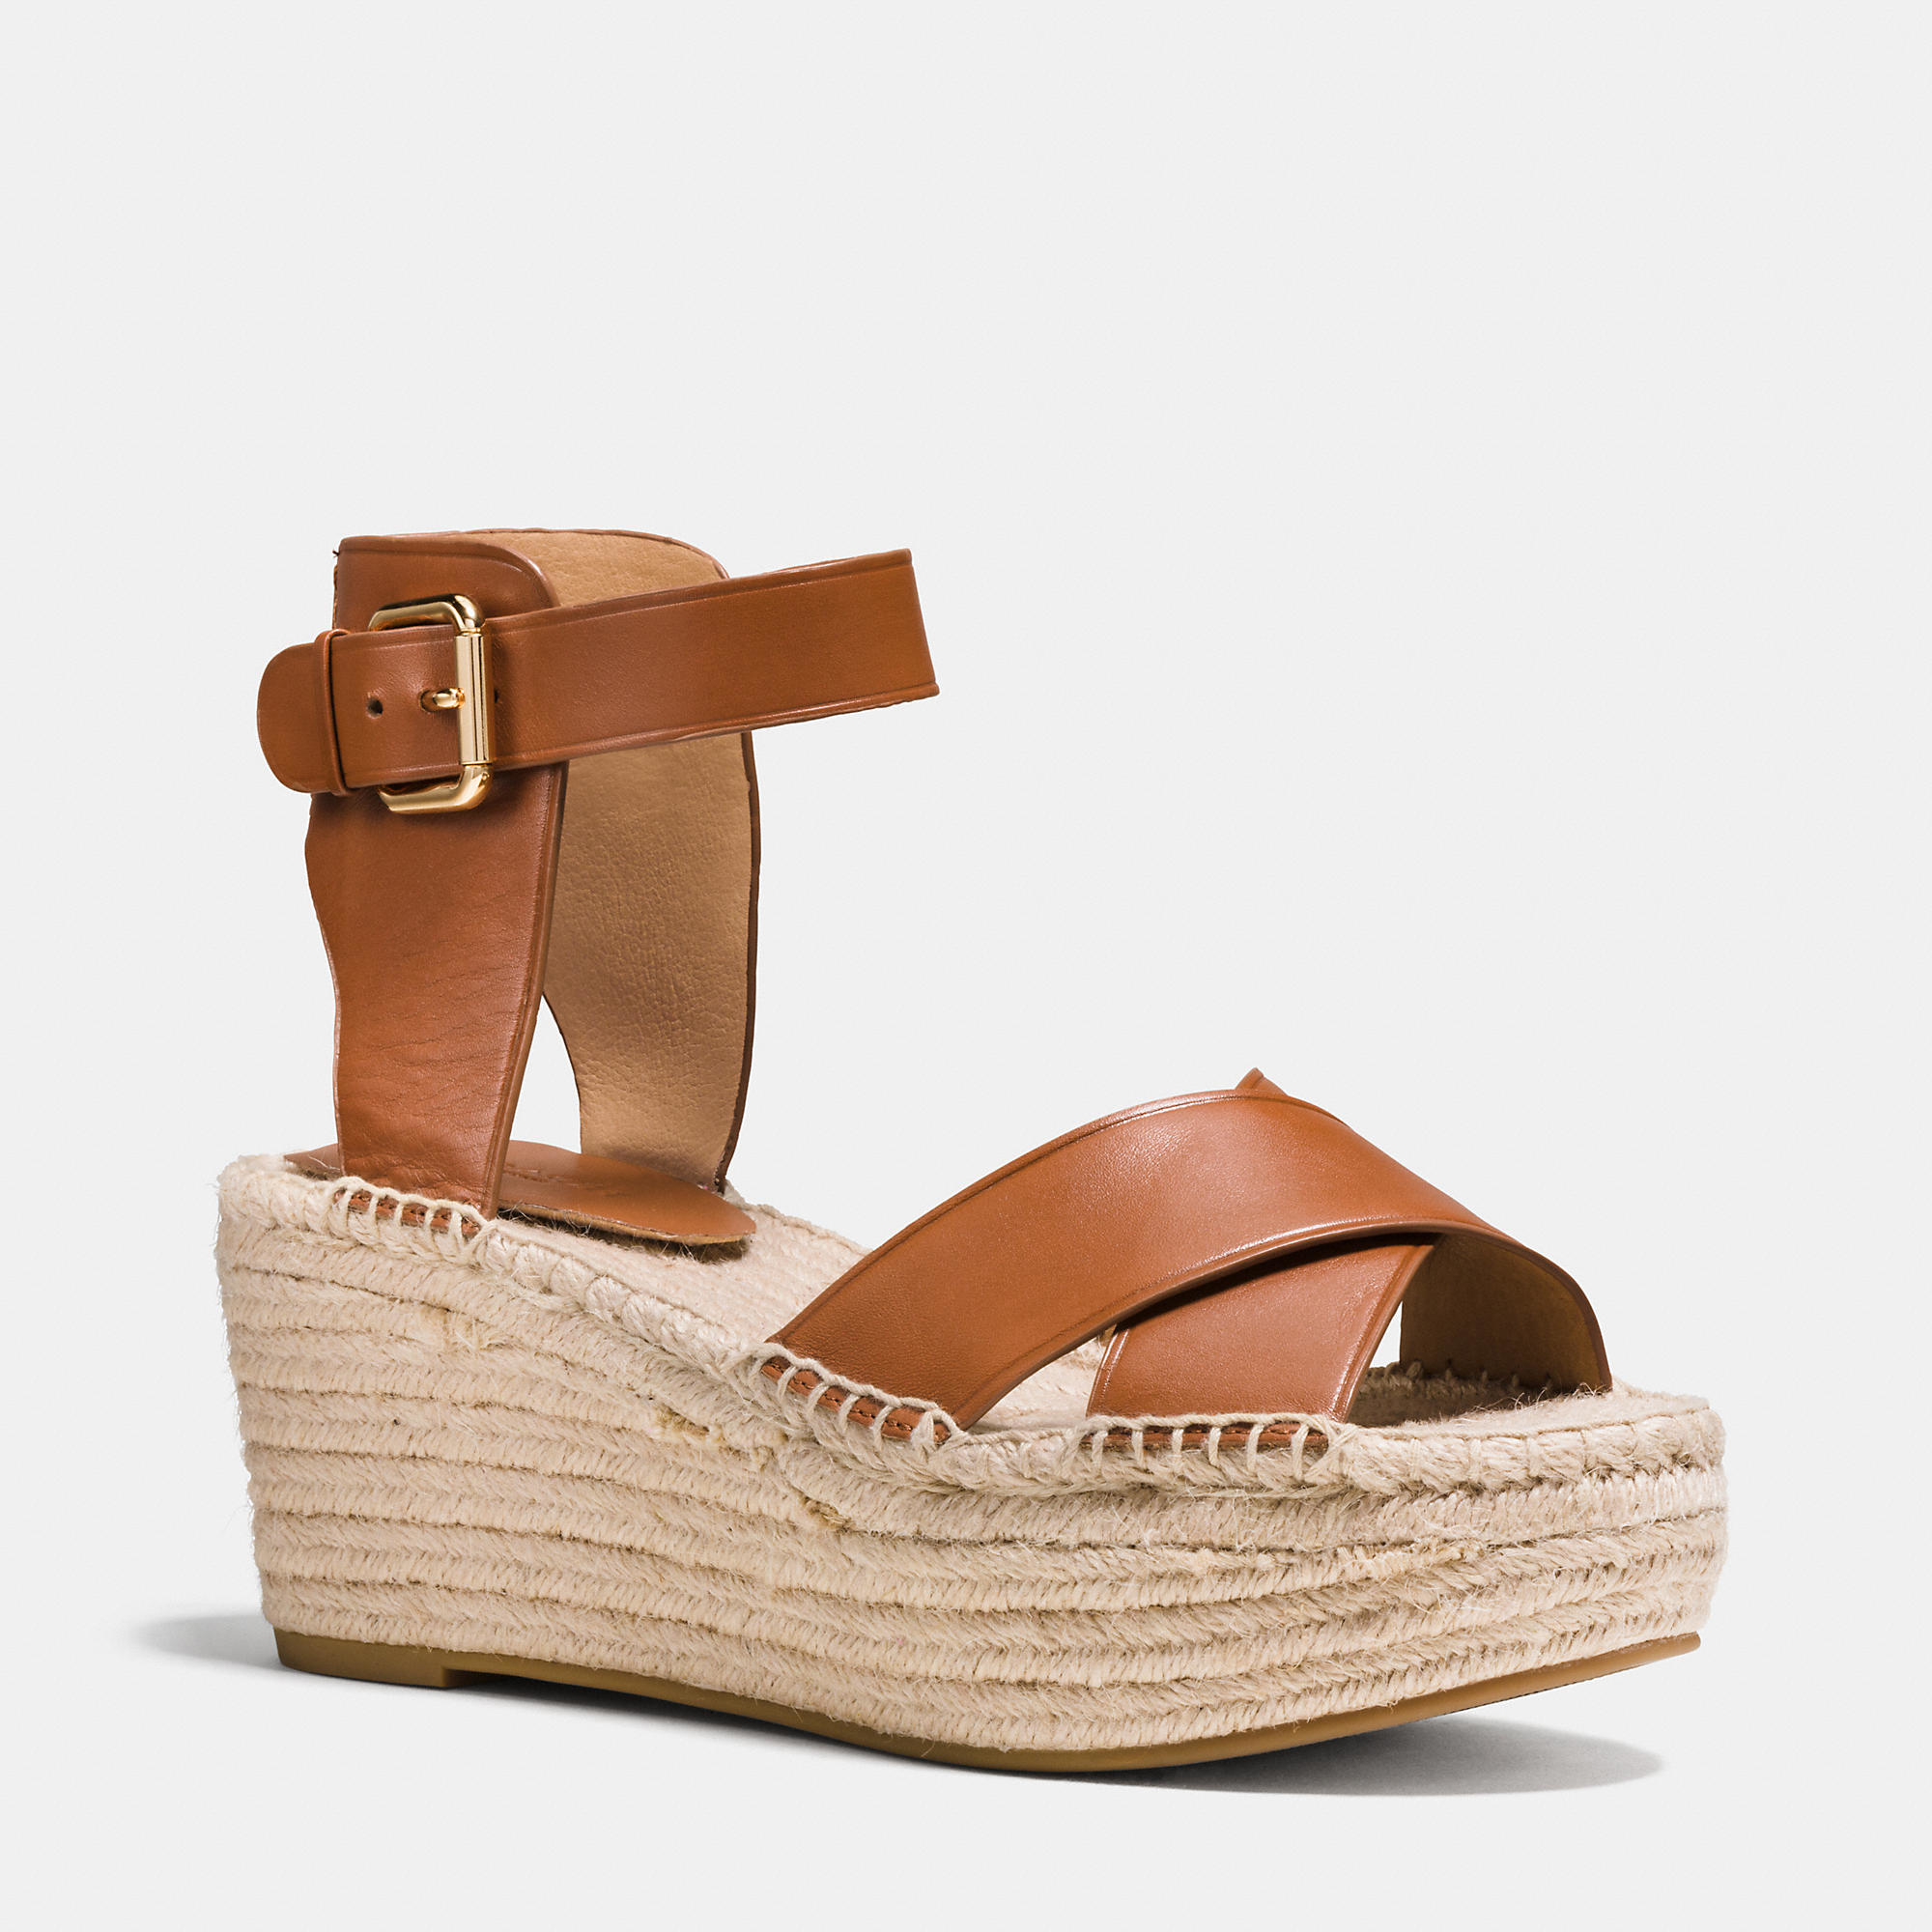 view sale online Coach Leather Espadrille Wedges outlet best wholesale cheap price from china cheap discount sale 5iQNwggee3